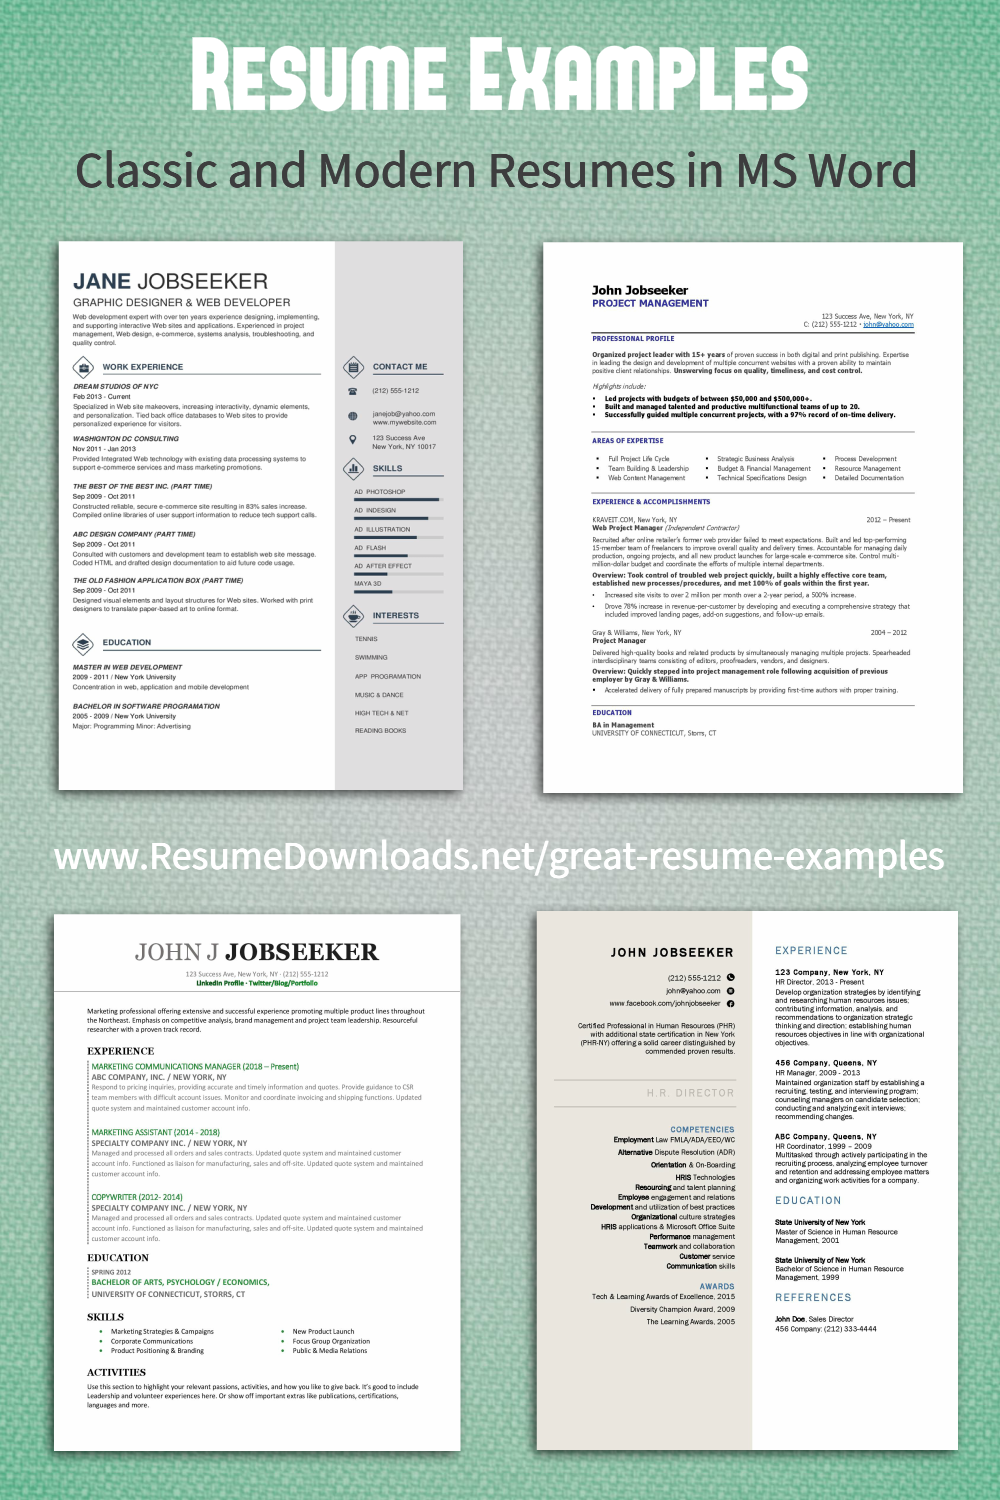 Good Resume Examples Click To Better Your Career By Getting More Interviews Resume Examples Good Resume Examples Best Resume